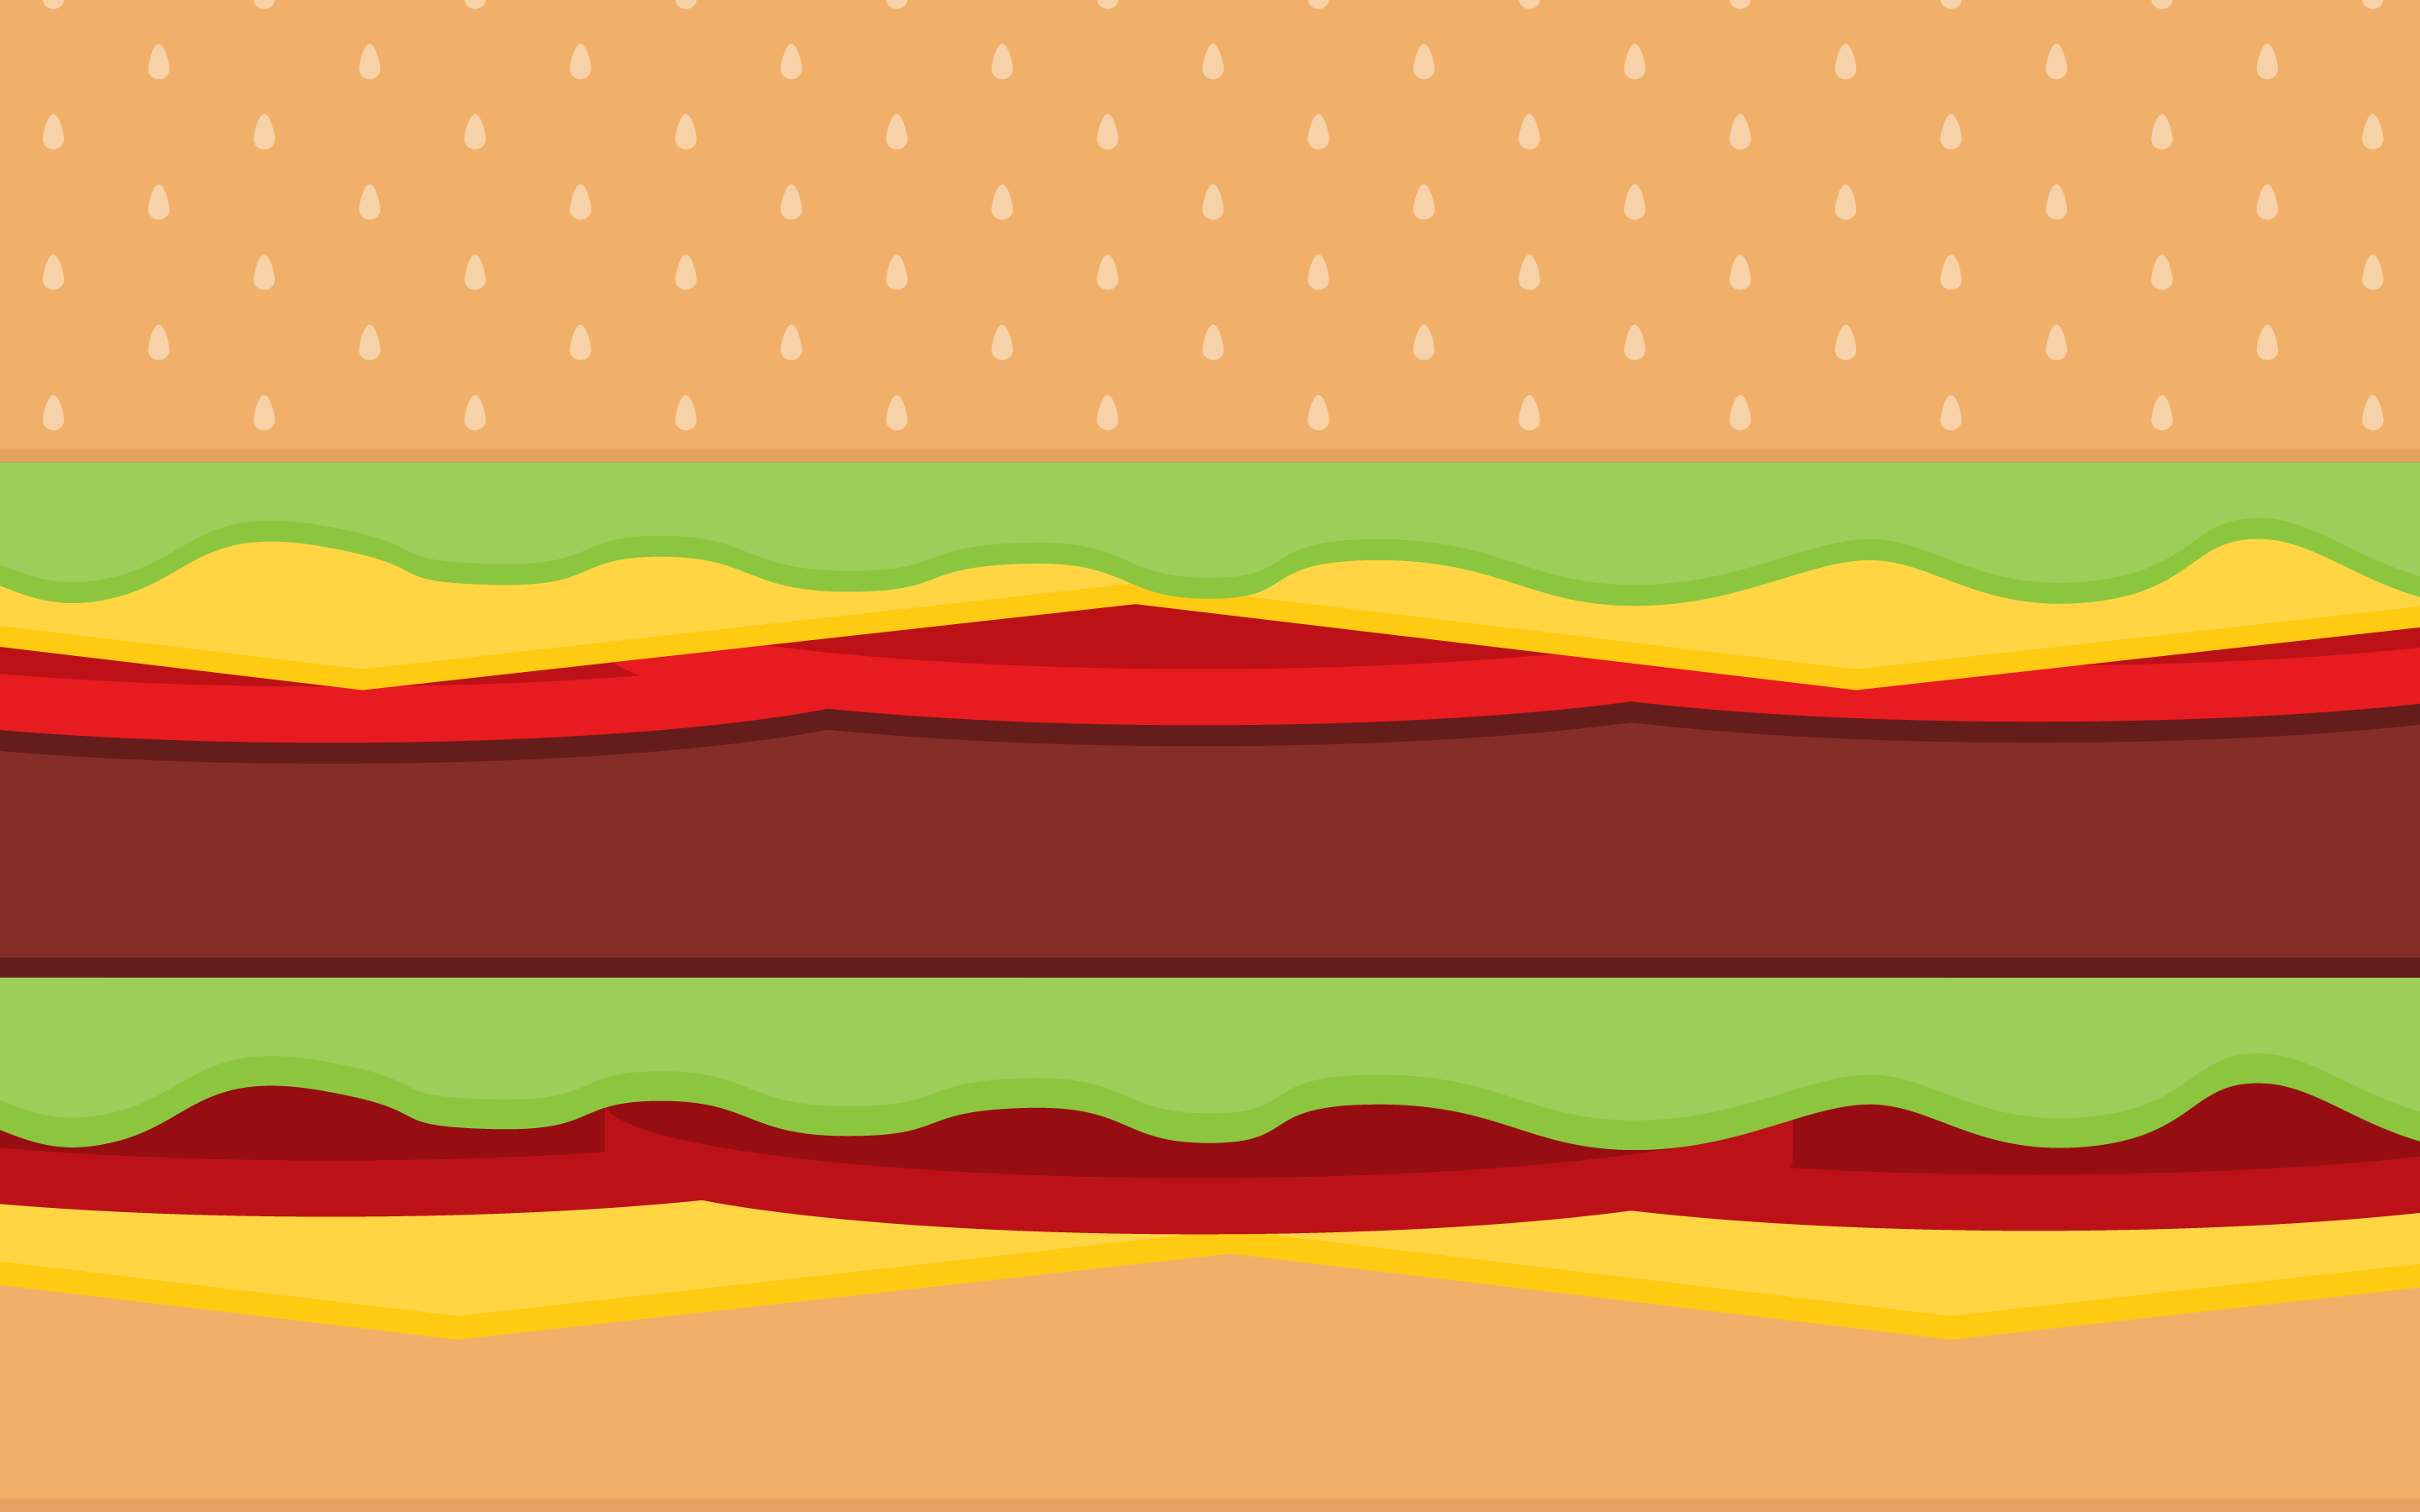 Burger clipart wallpaper Burger YAN Wallpapers  Wallpapers